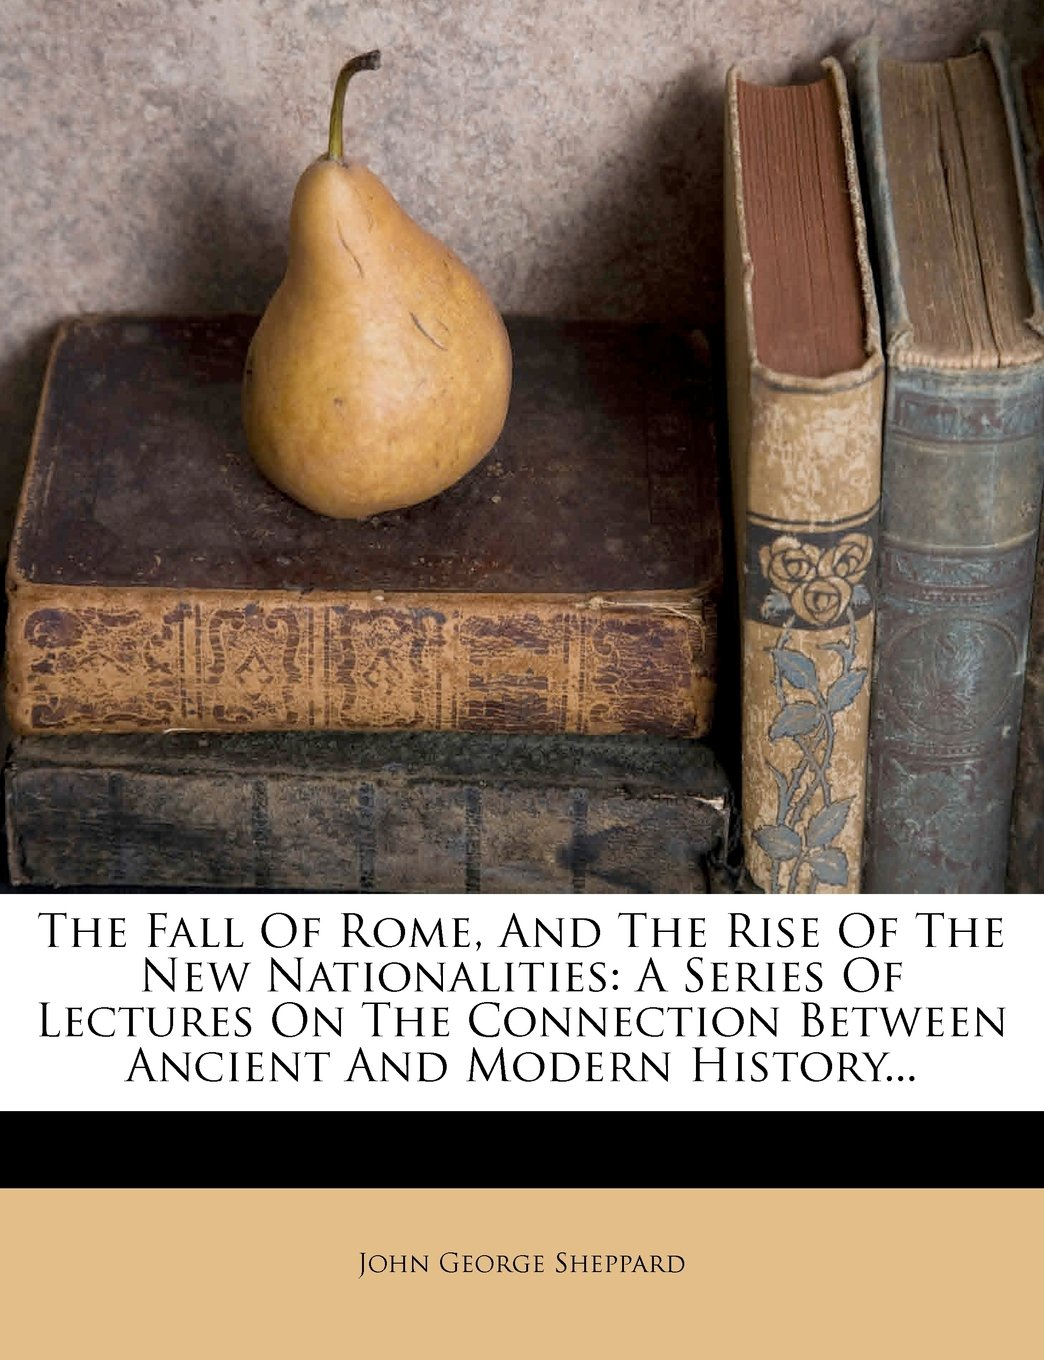 The Fall Of Rome, And The Rise Of The New Nationalities: A Series Of Lectures On The Connection Between Ancient And Modern History... pdf epub